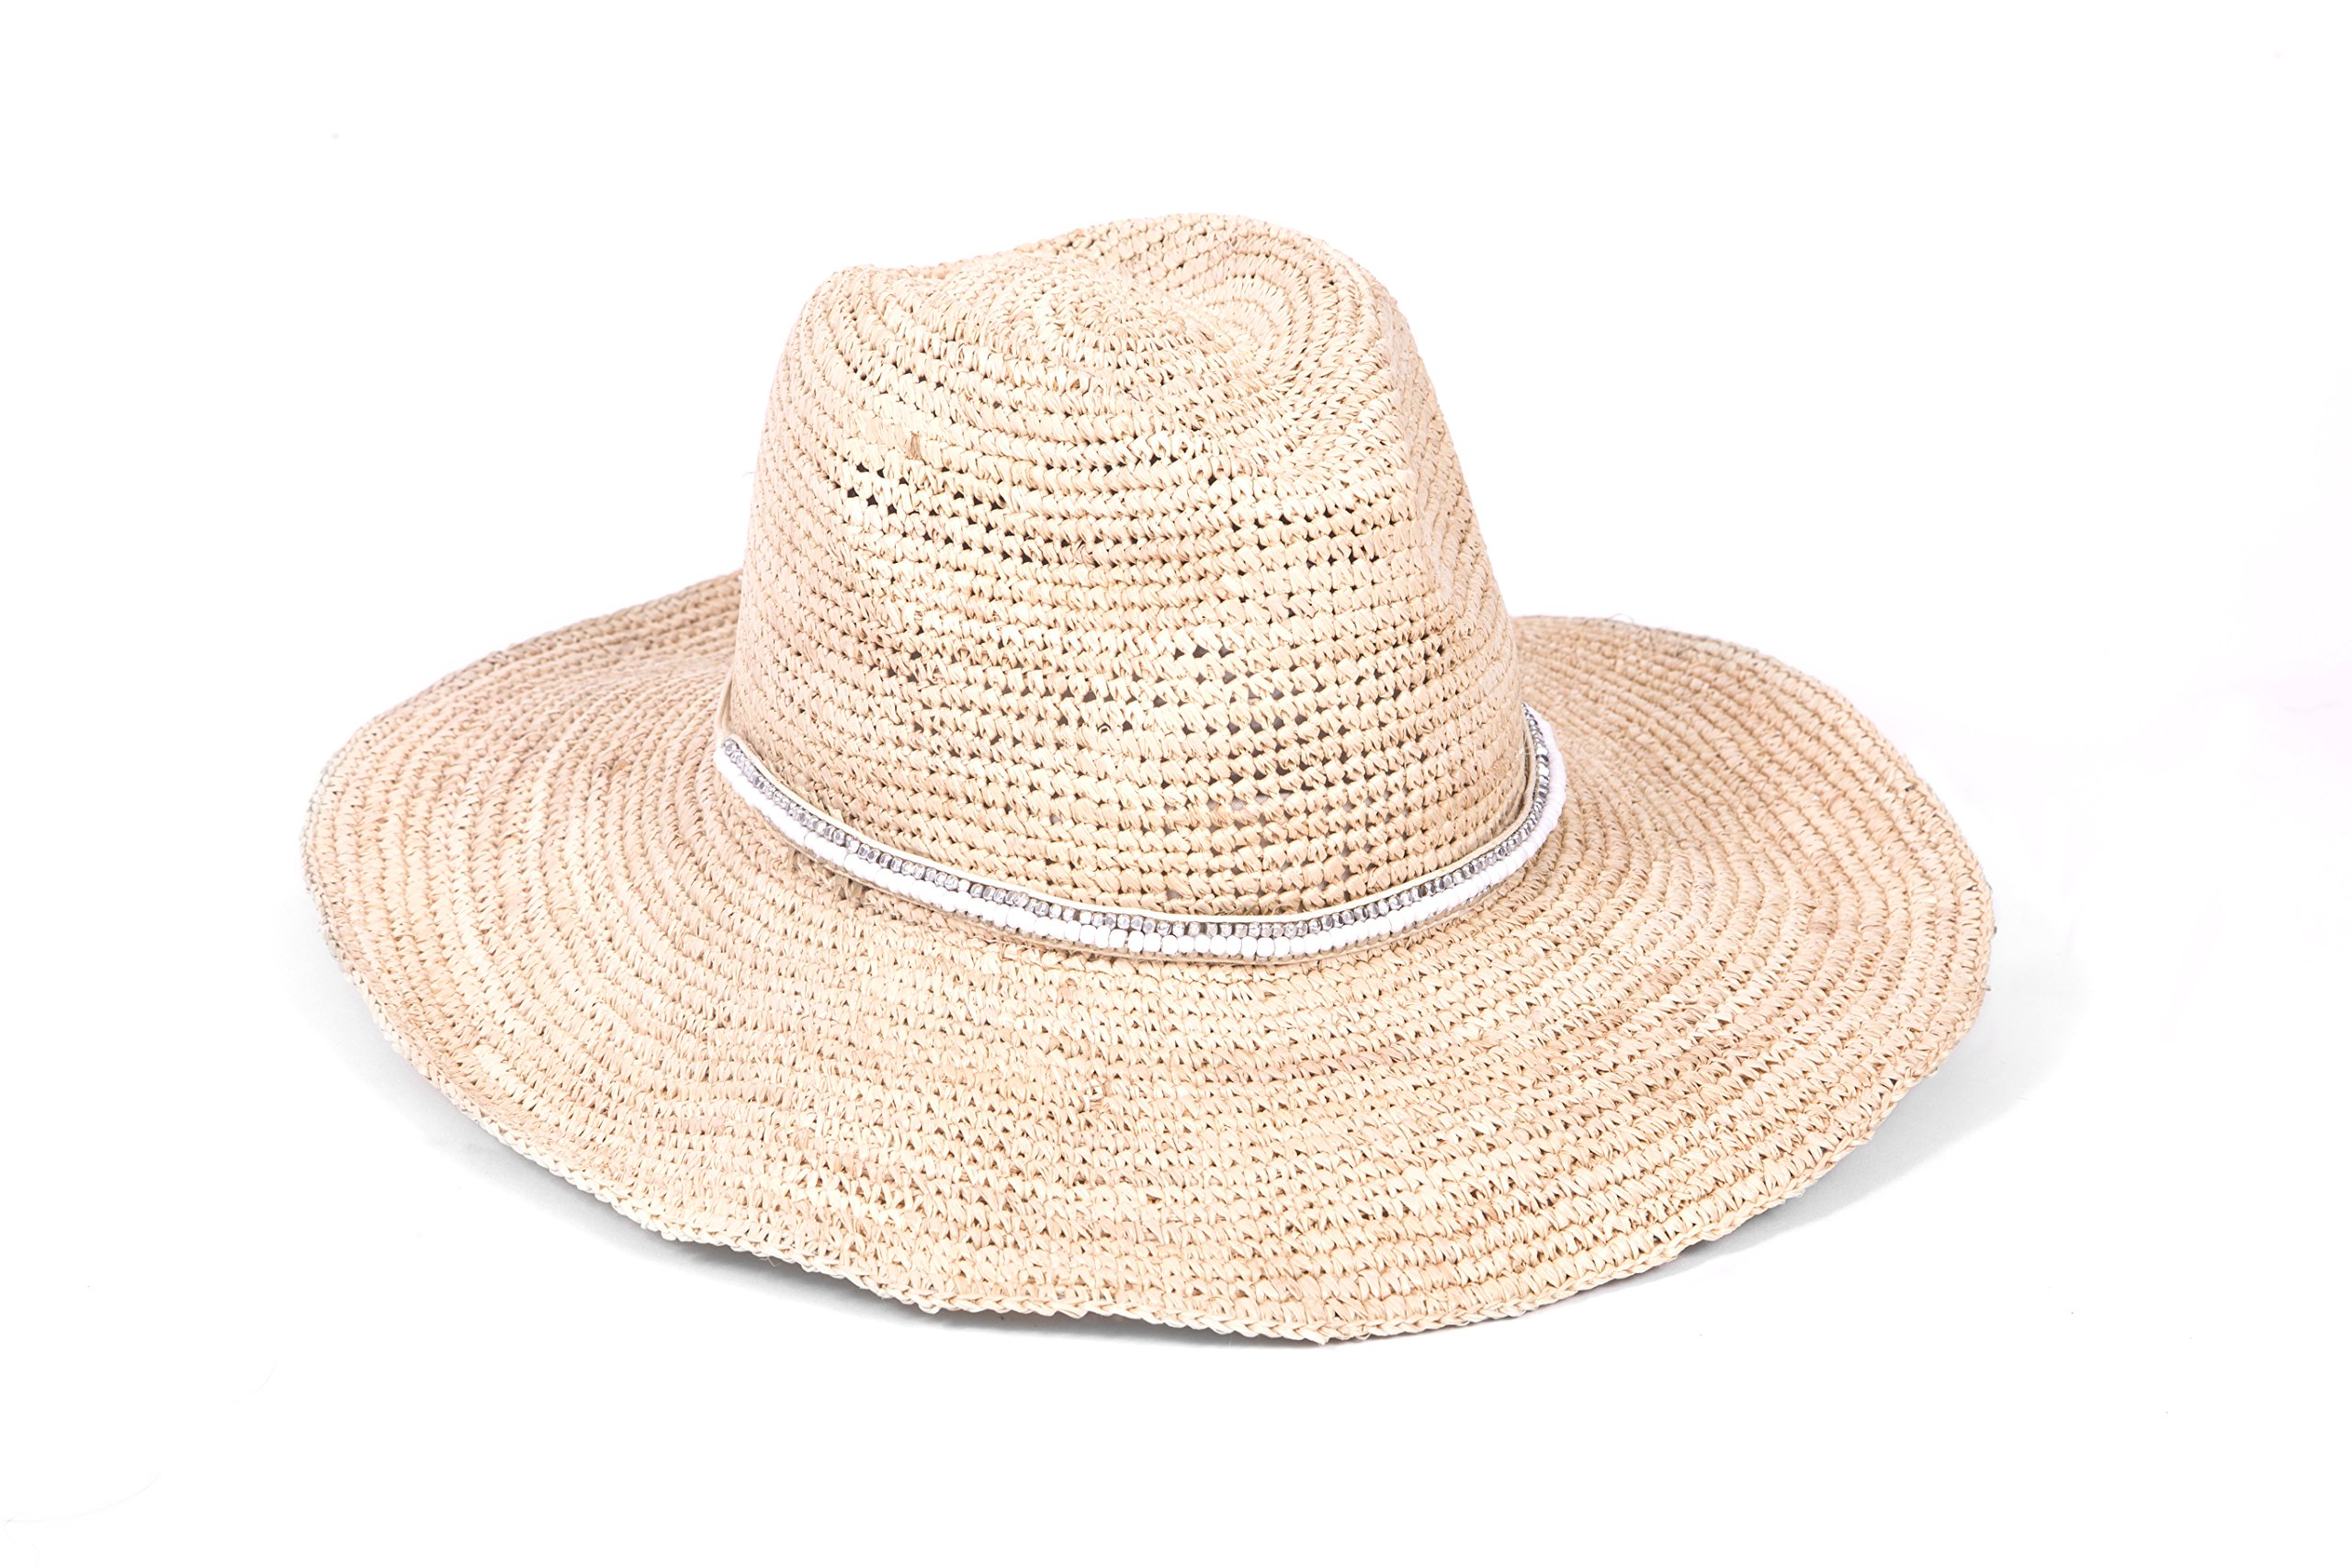 'ale by alessandra Women's Cody Crochet Raffia Sunhat Packable, Adjustable and Upf Rated, Natural/White, One Size